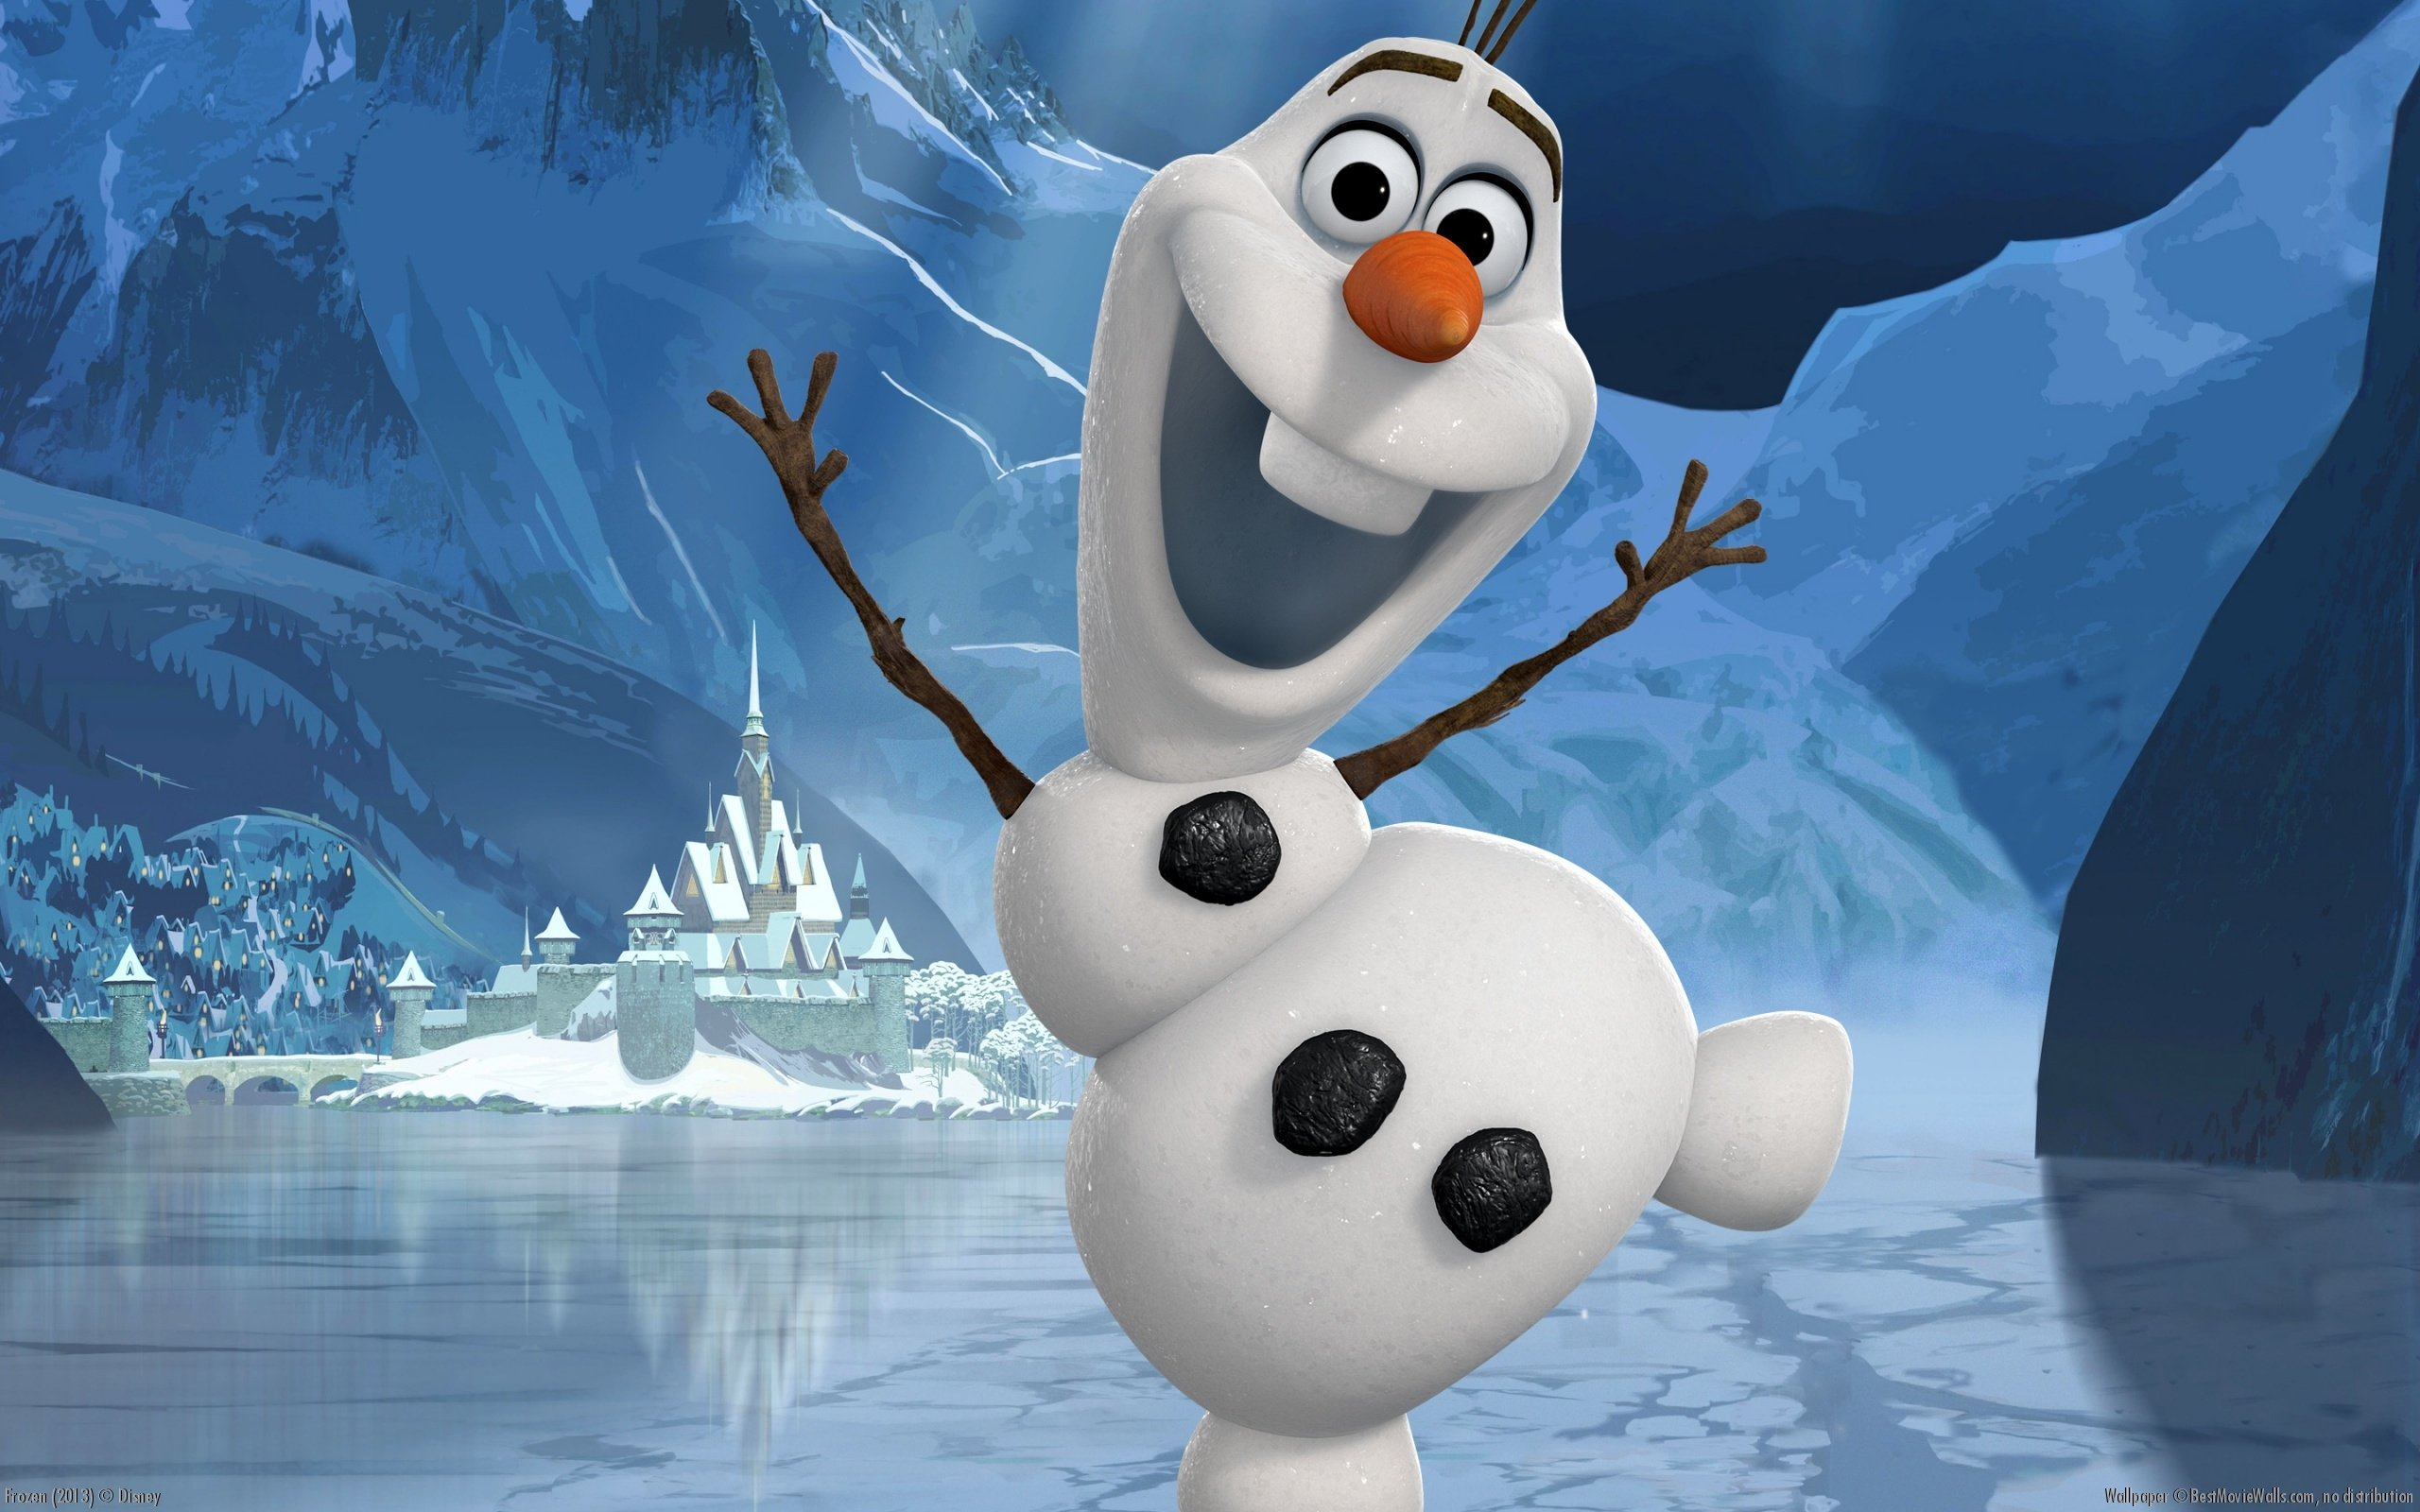 Frozen images Olaf Wallpaper wallpaper photos 36065985 2560x1600